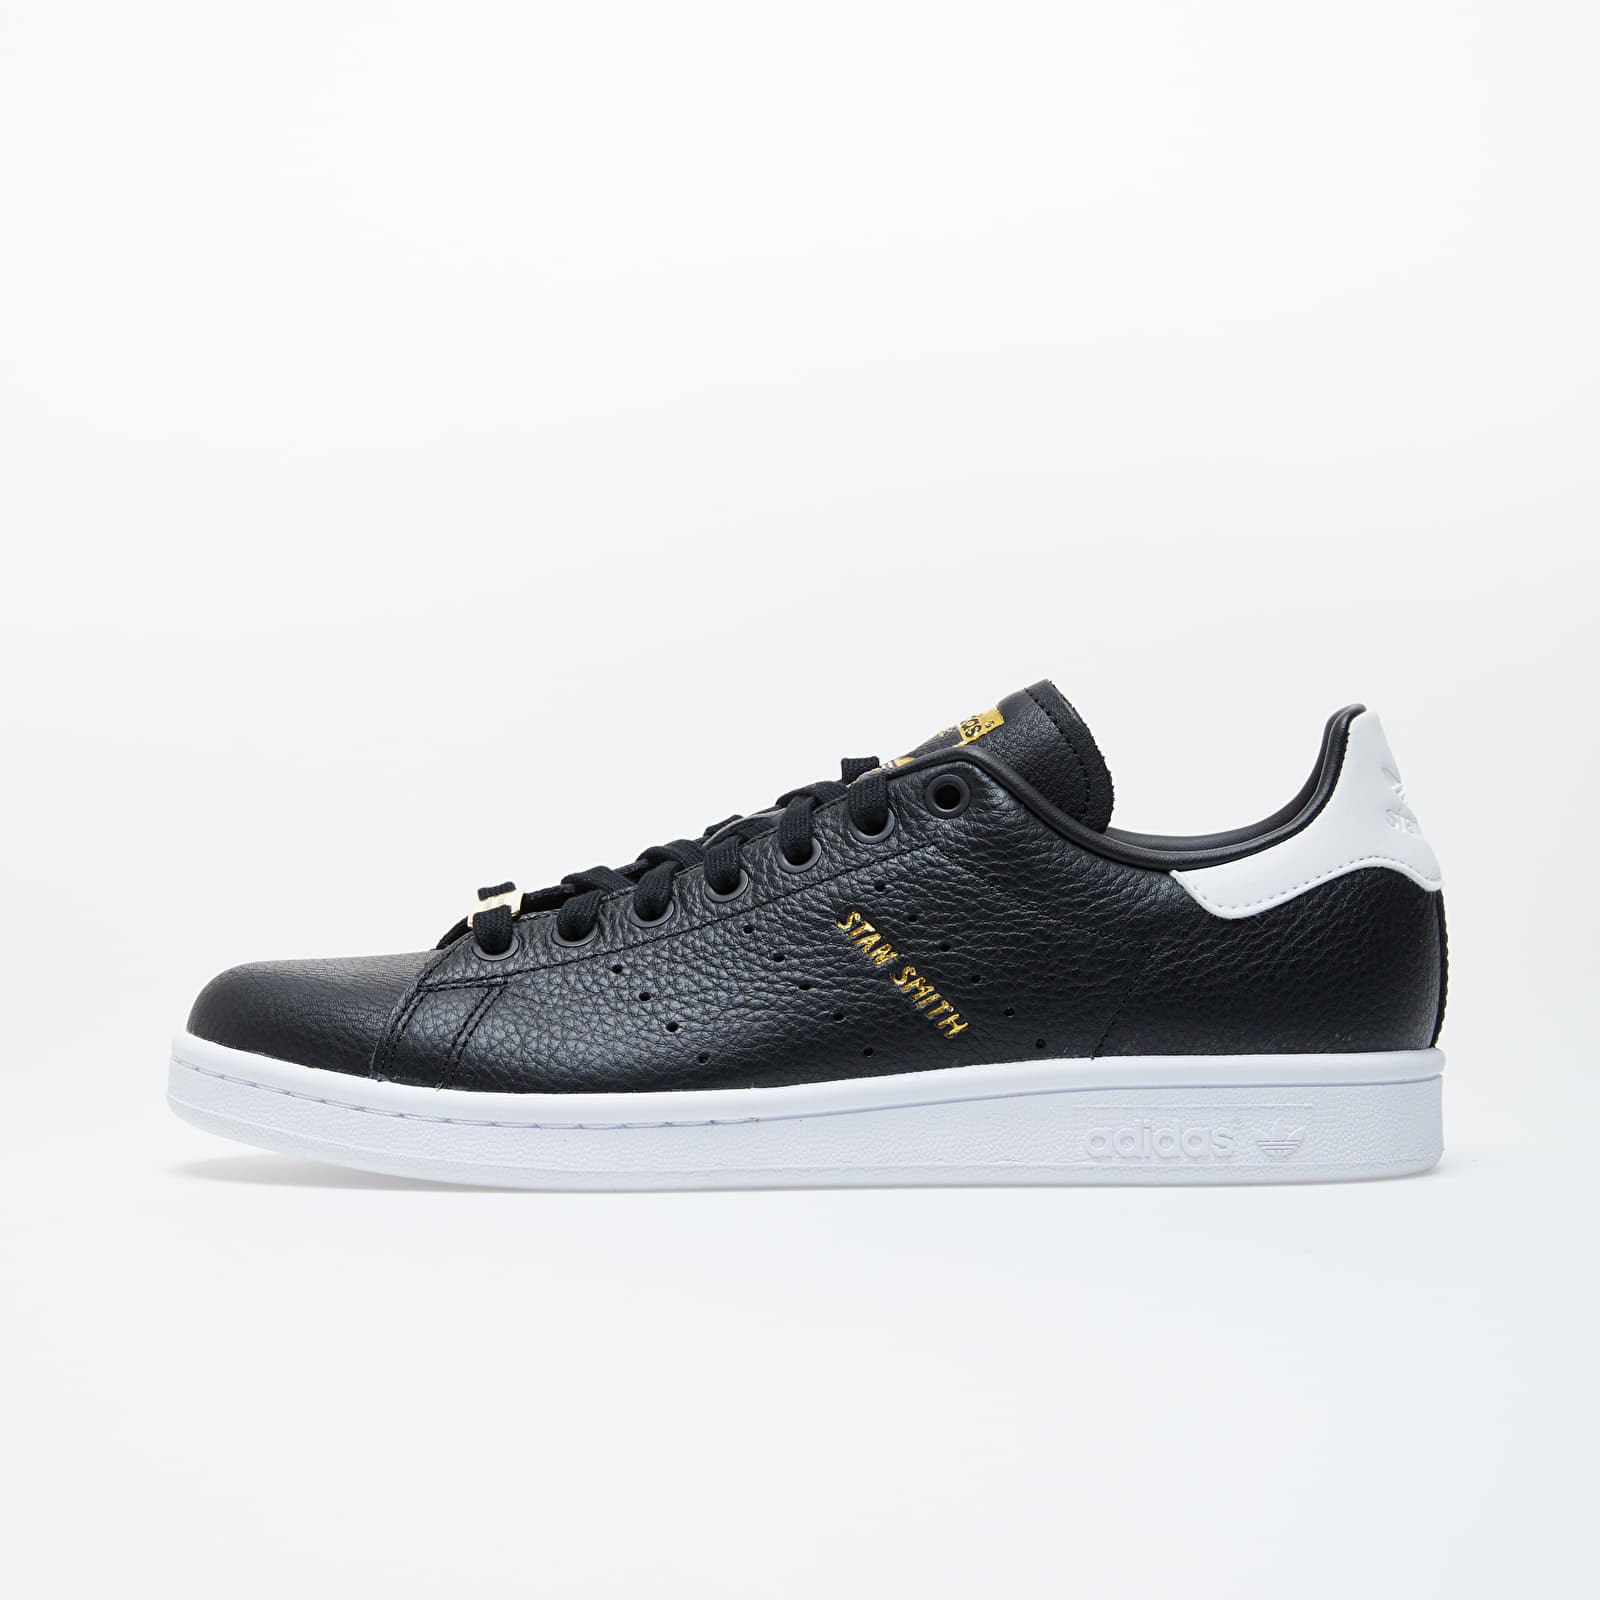 Men's shoes adidas Stan Smith Core Black/ Core Black/ Ftw White